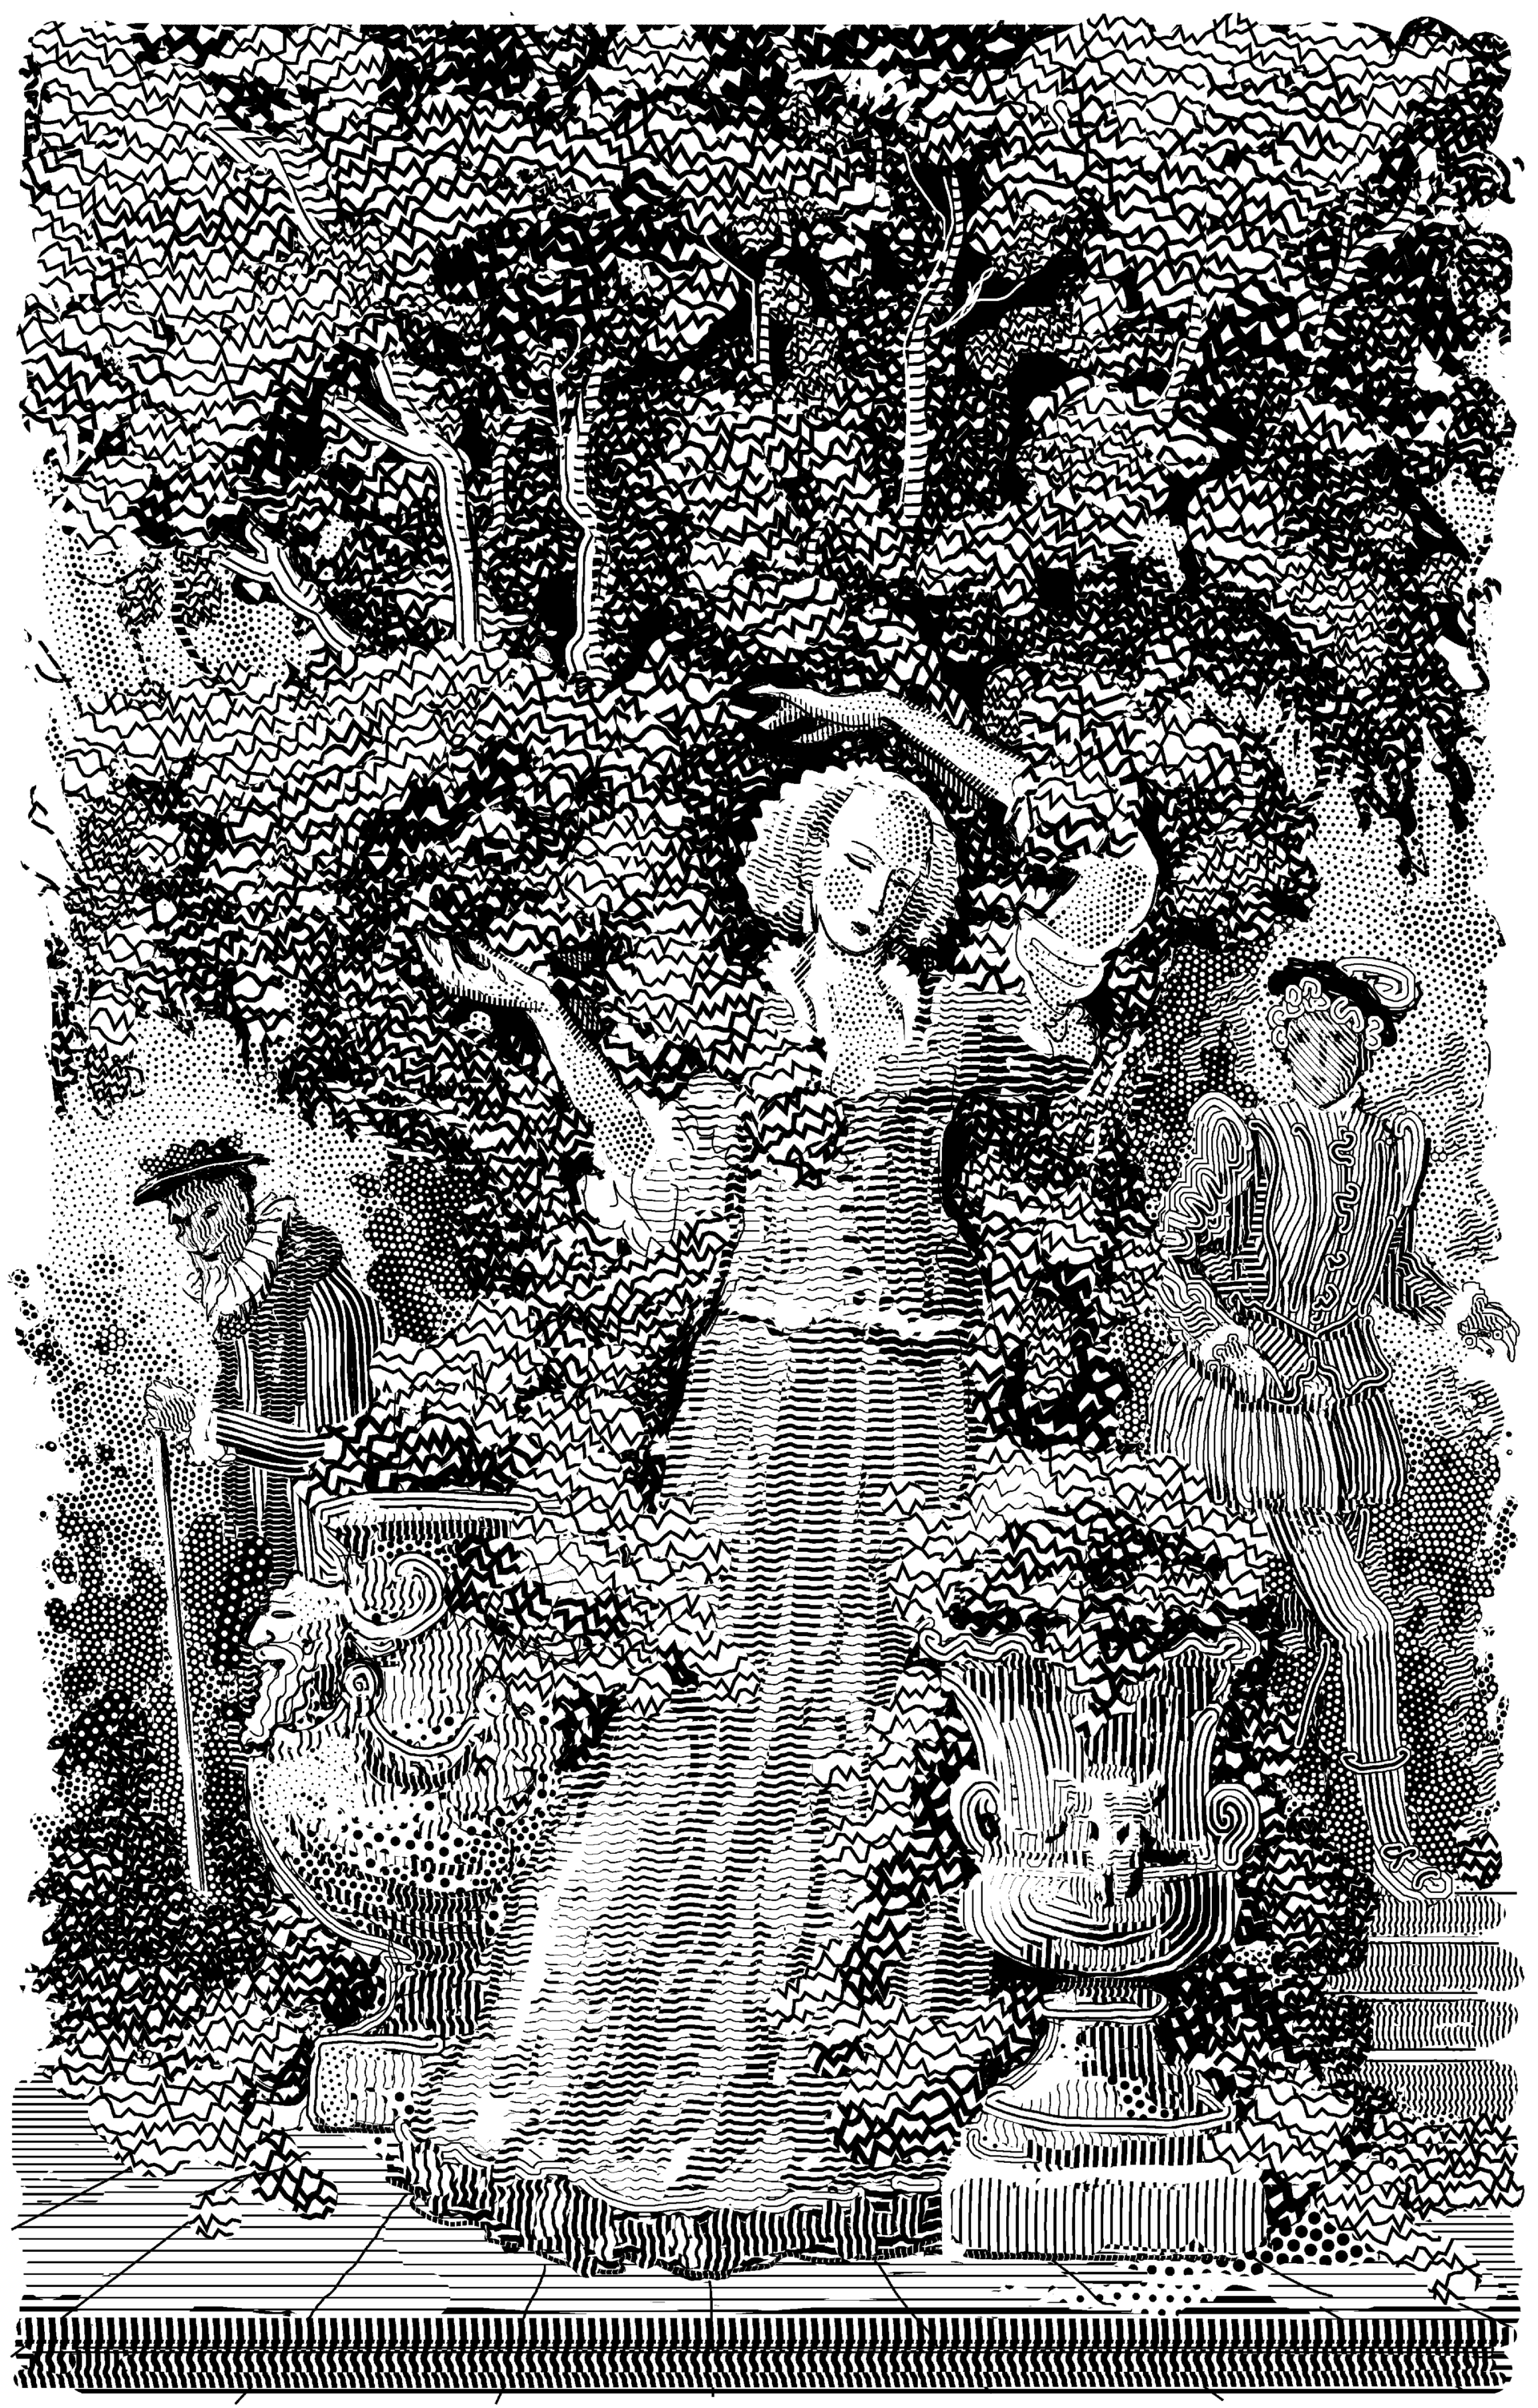 Rappaccini's daugther in her garden